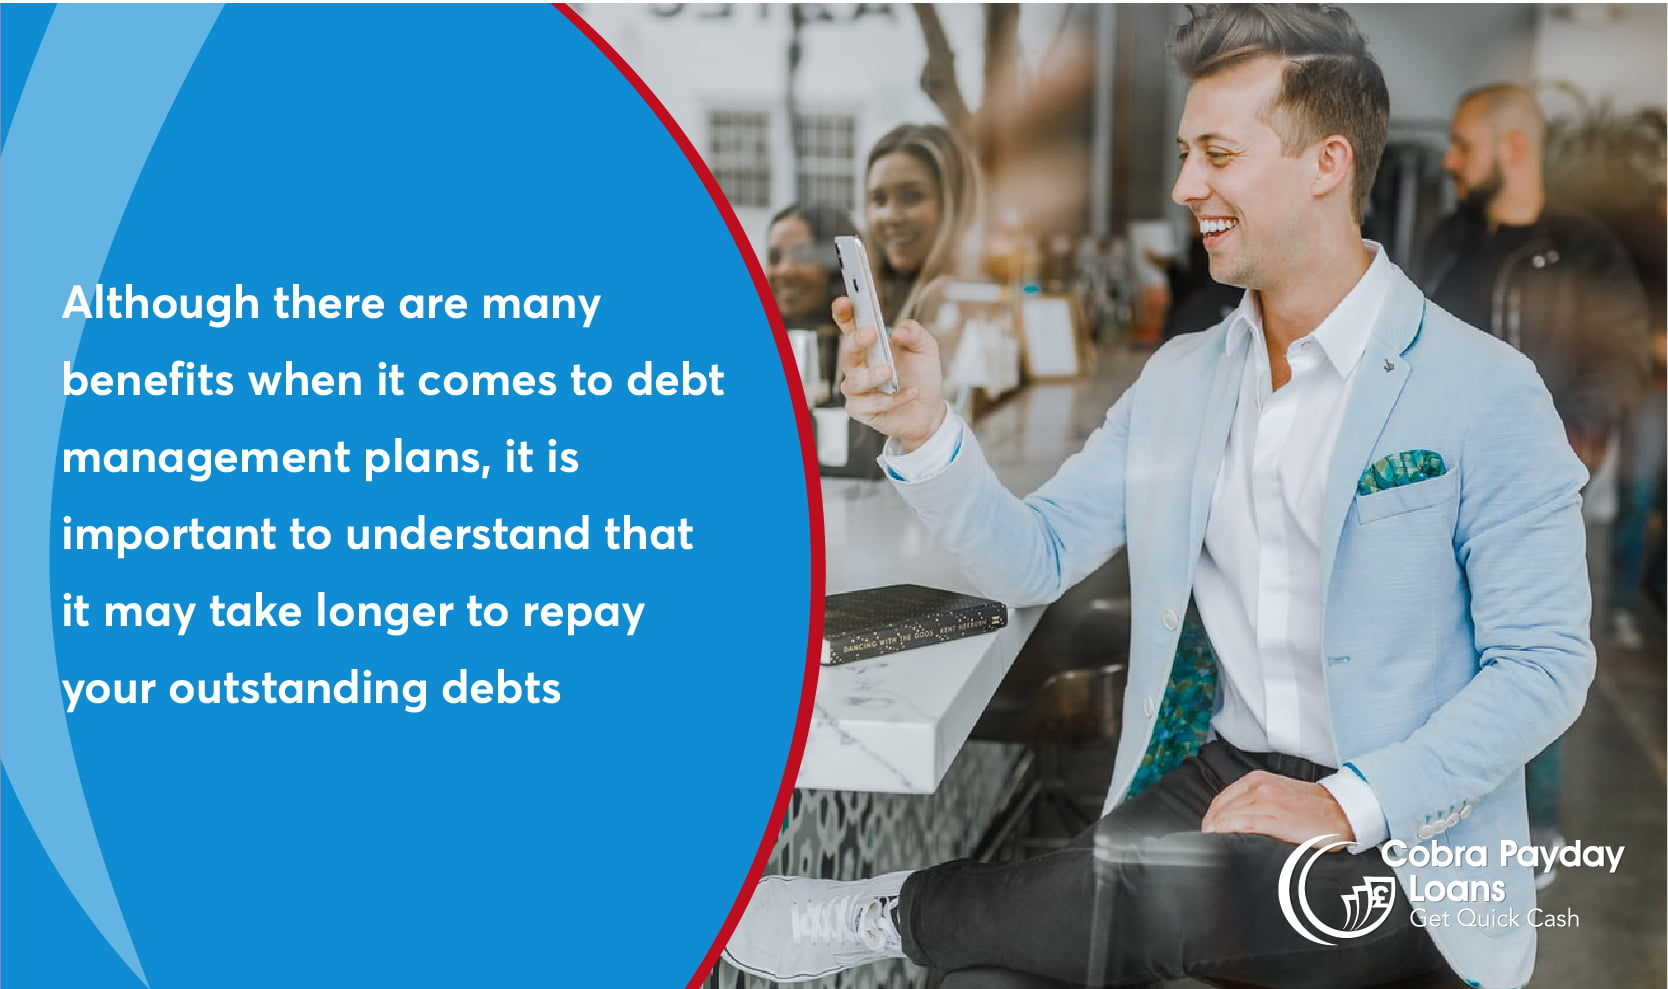 Although there are many benefits when it comes to debt management plans, it is important to understand that it may take longer to repay your outstanding debts